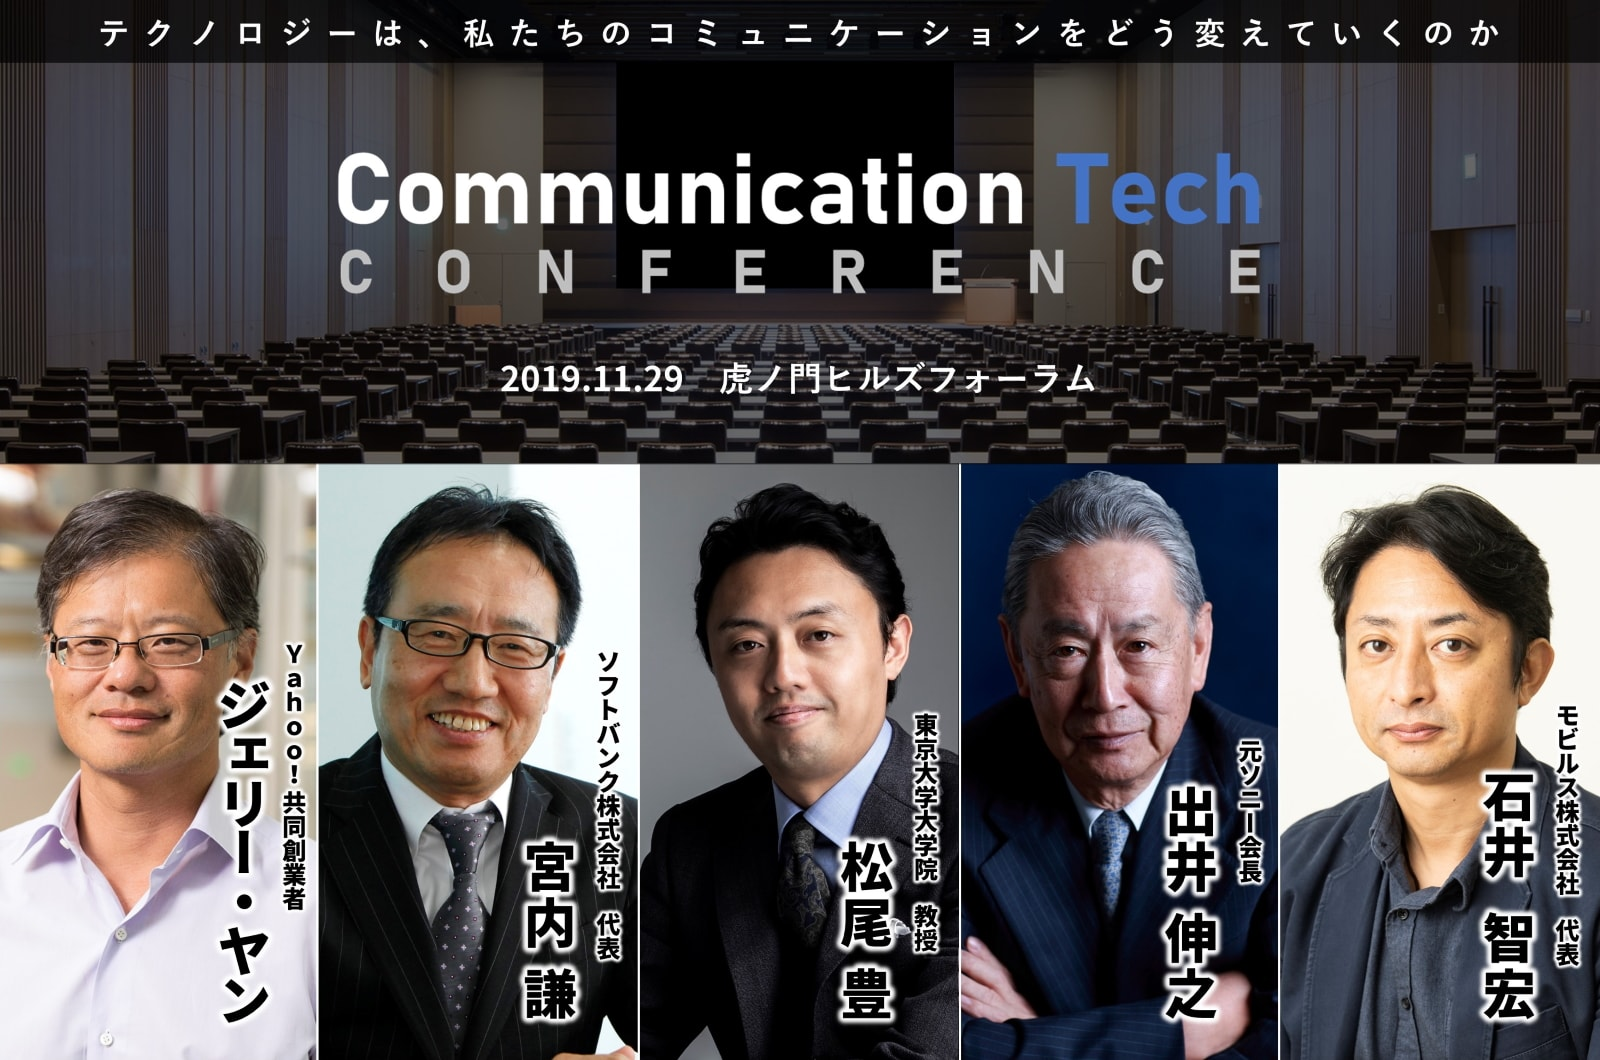 Communication Tech Conference 2019